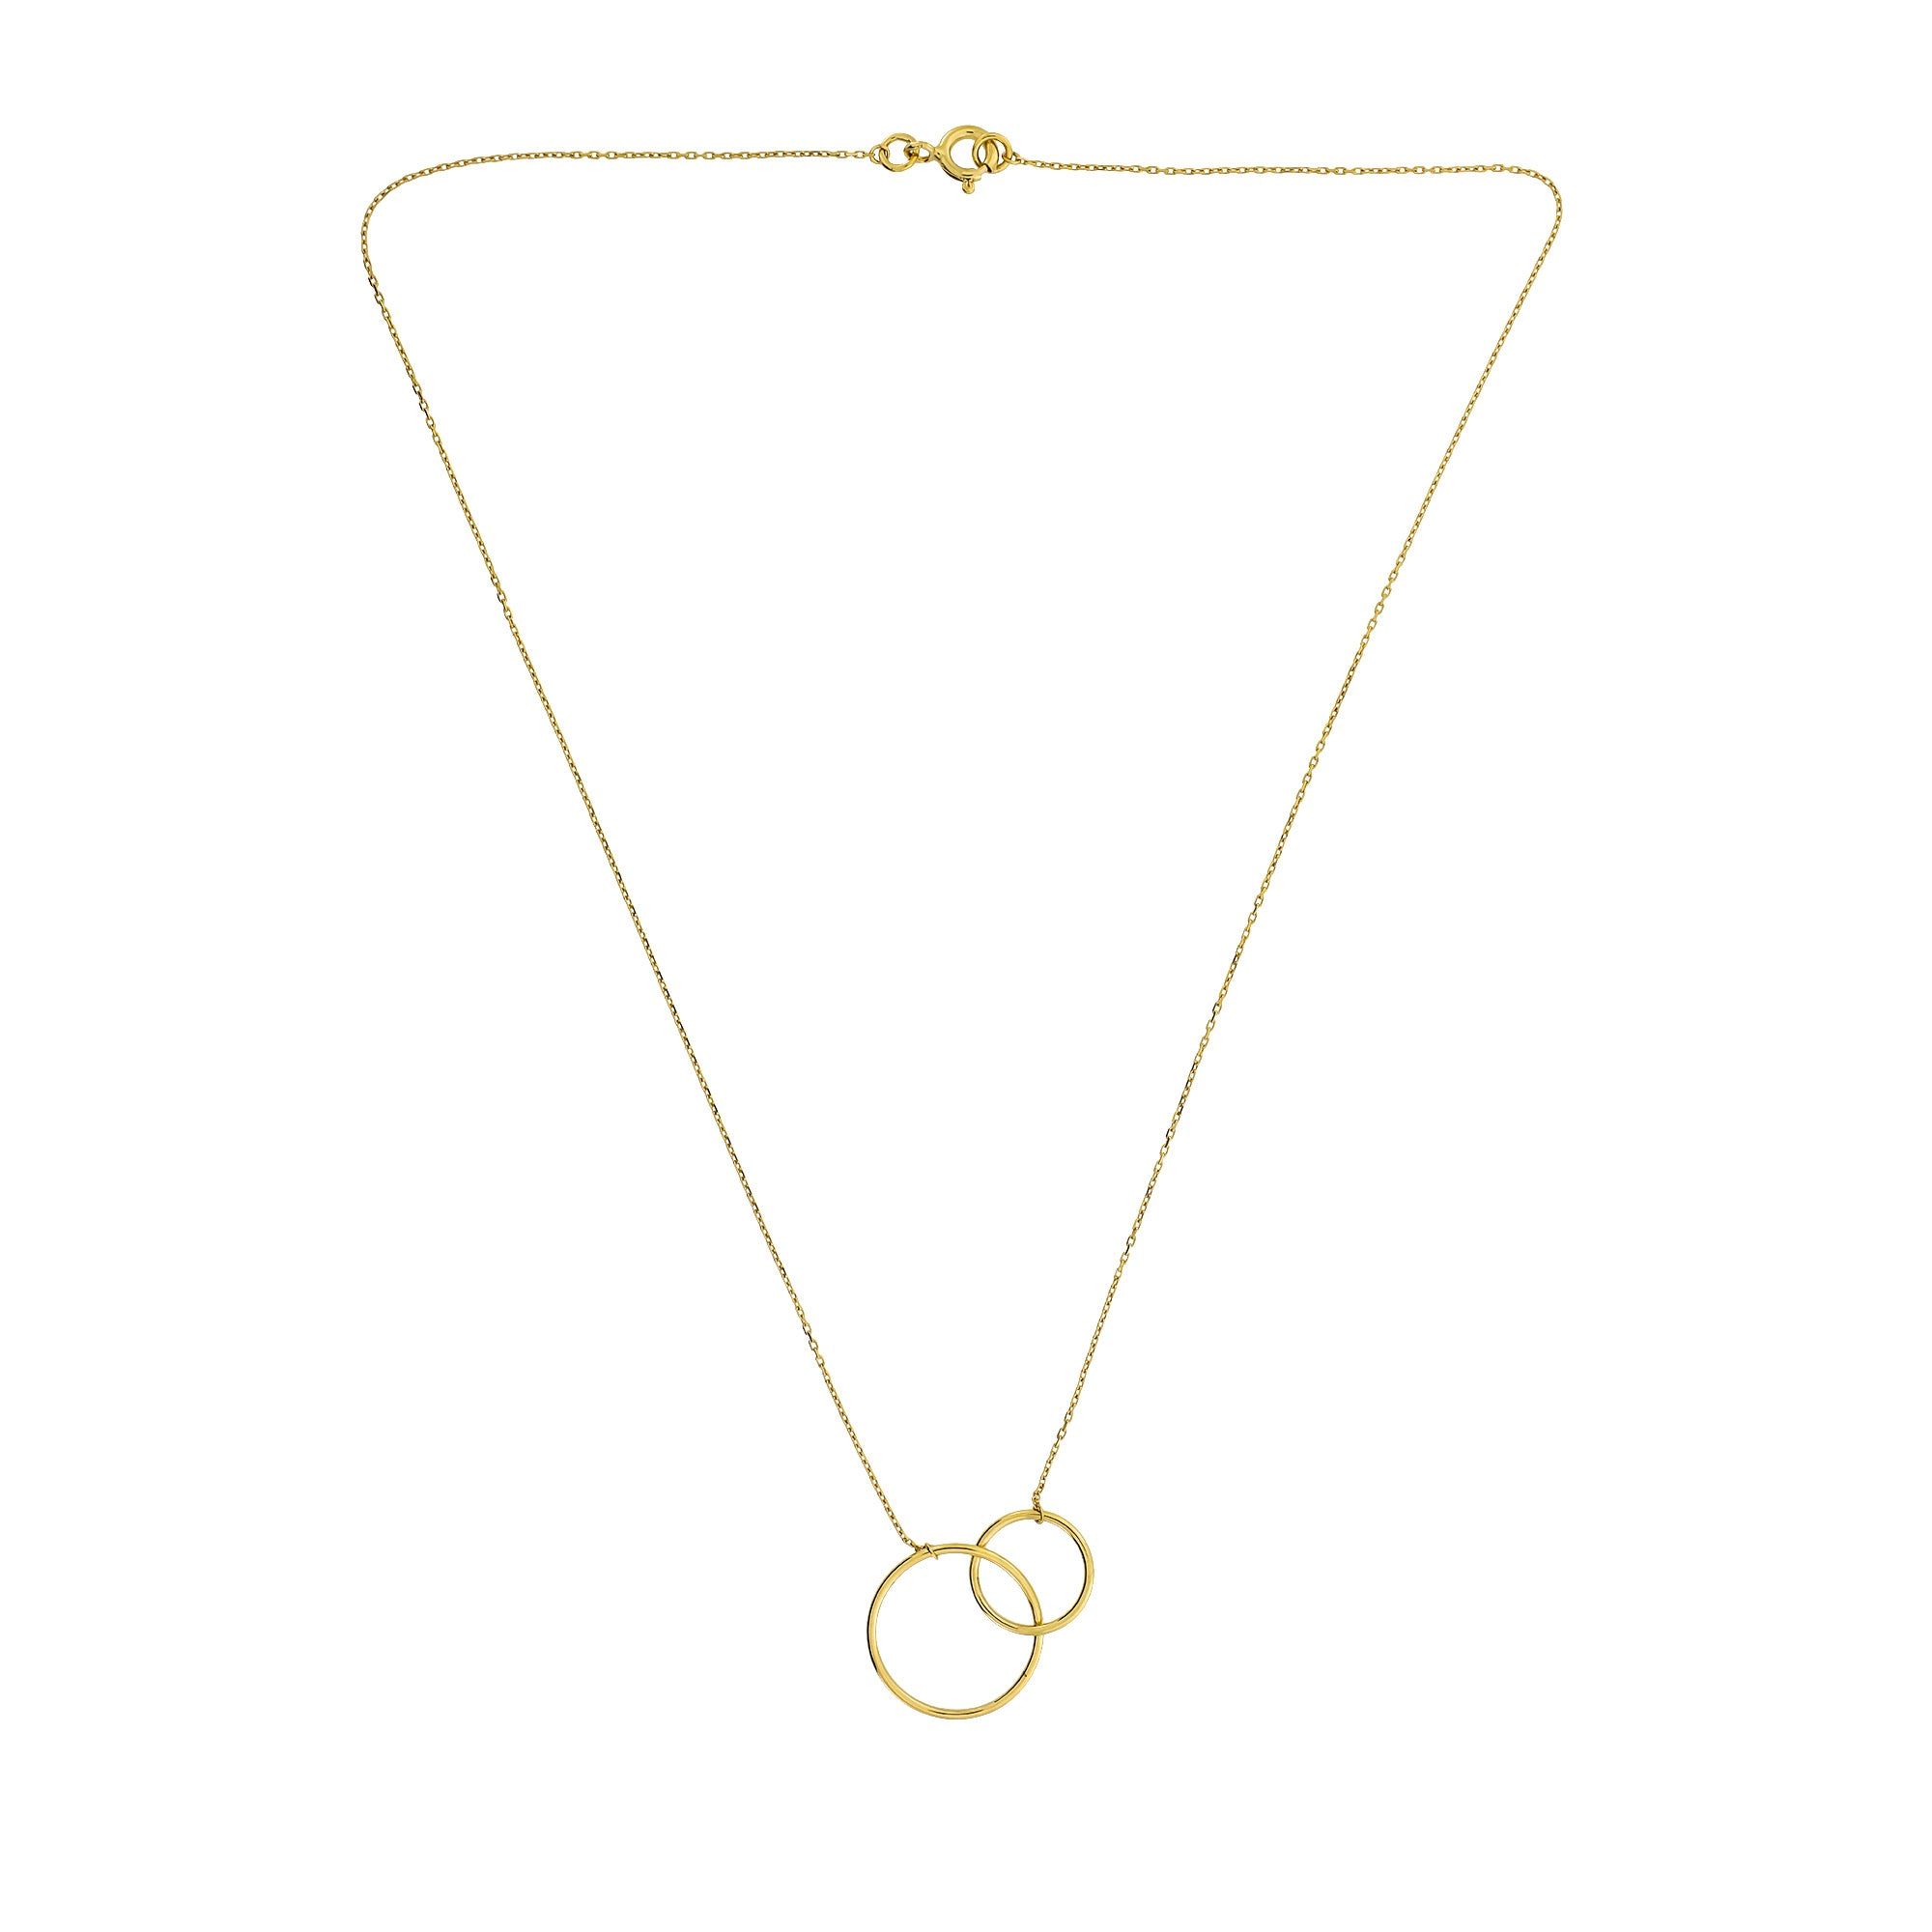 9ct Gold Interlocking Circles Necklace